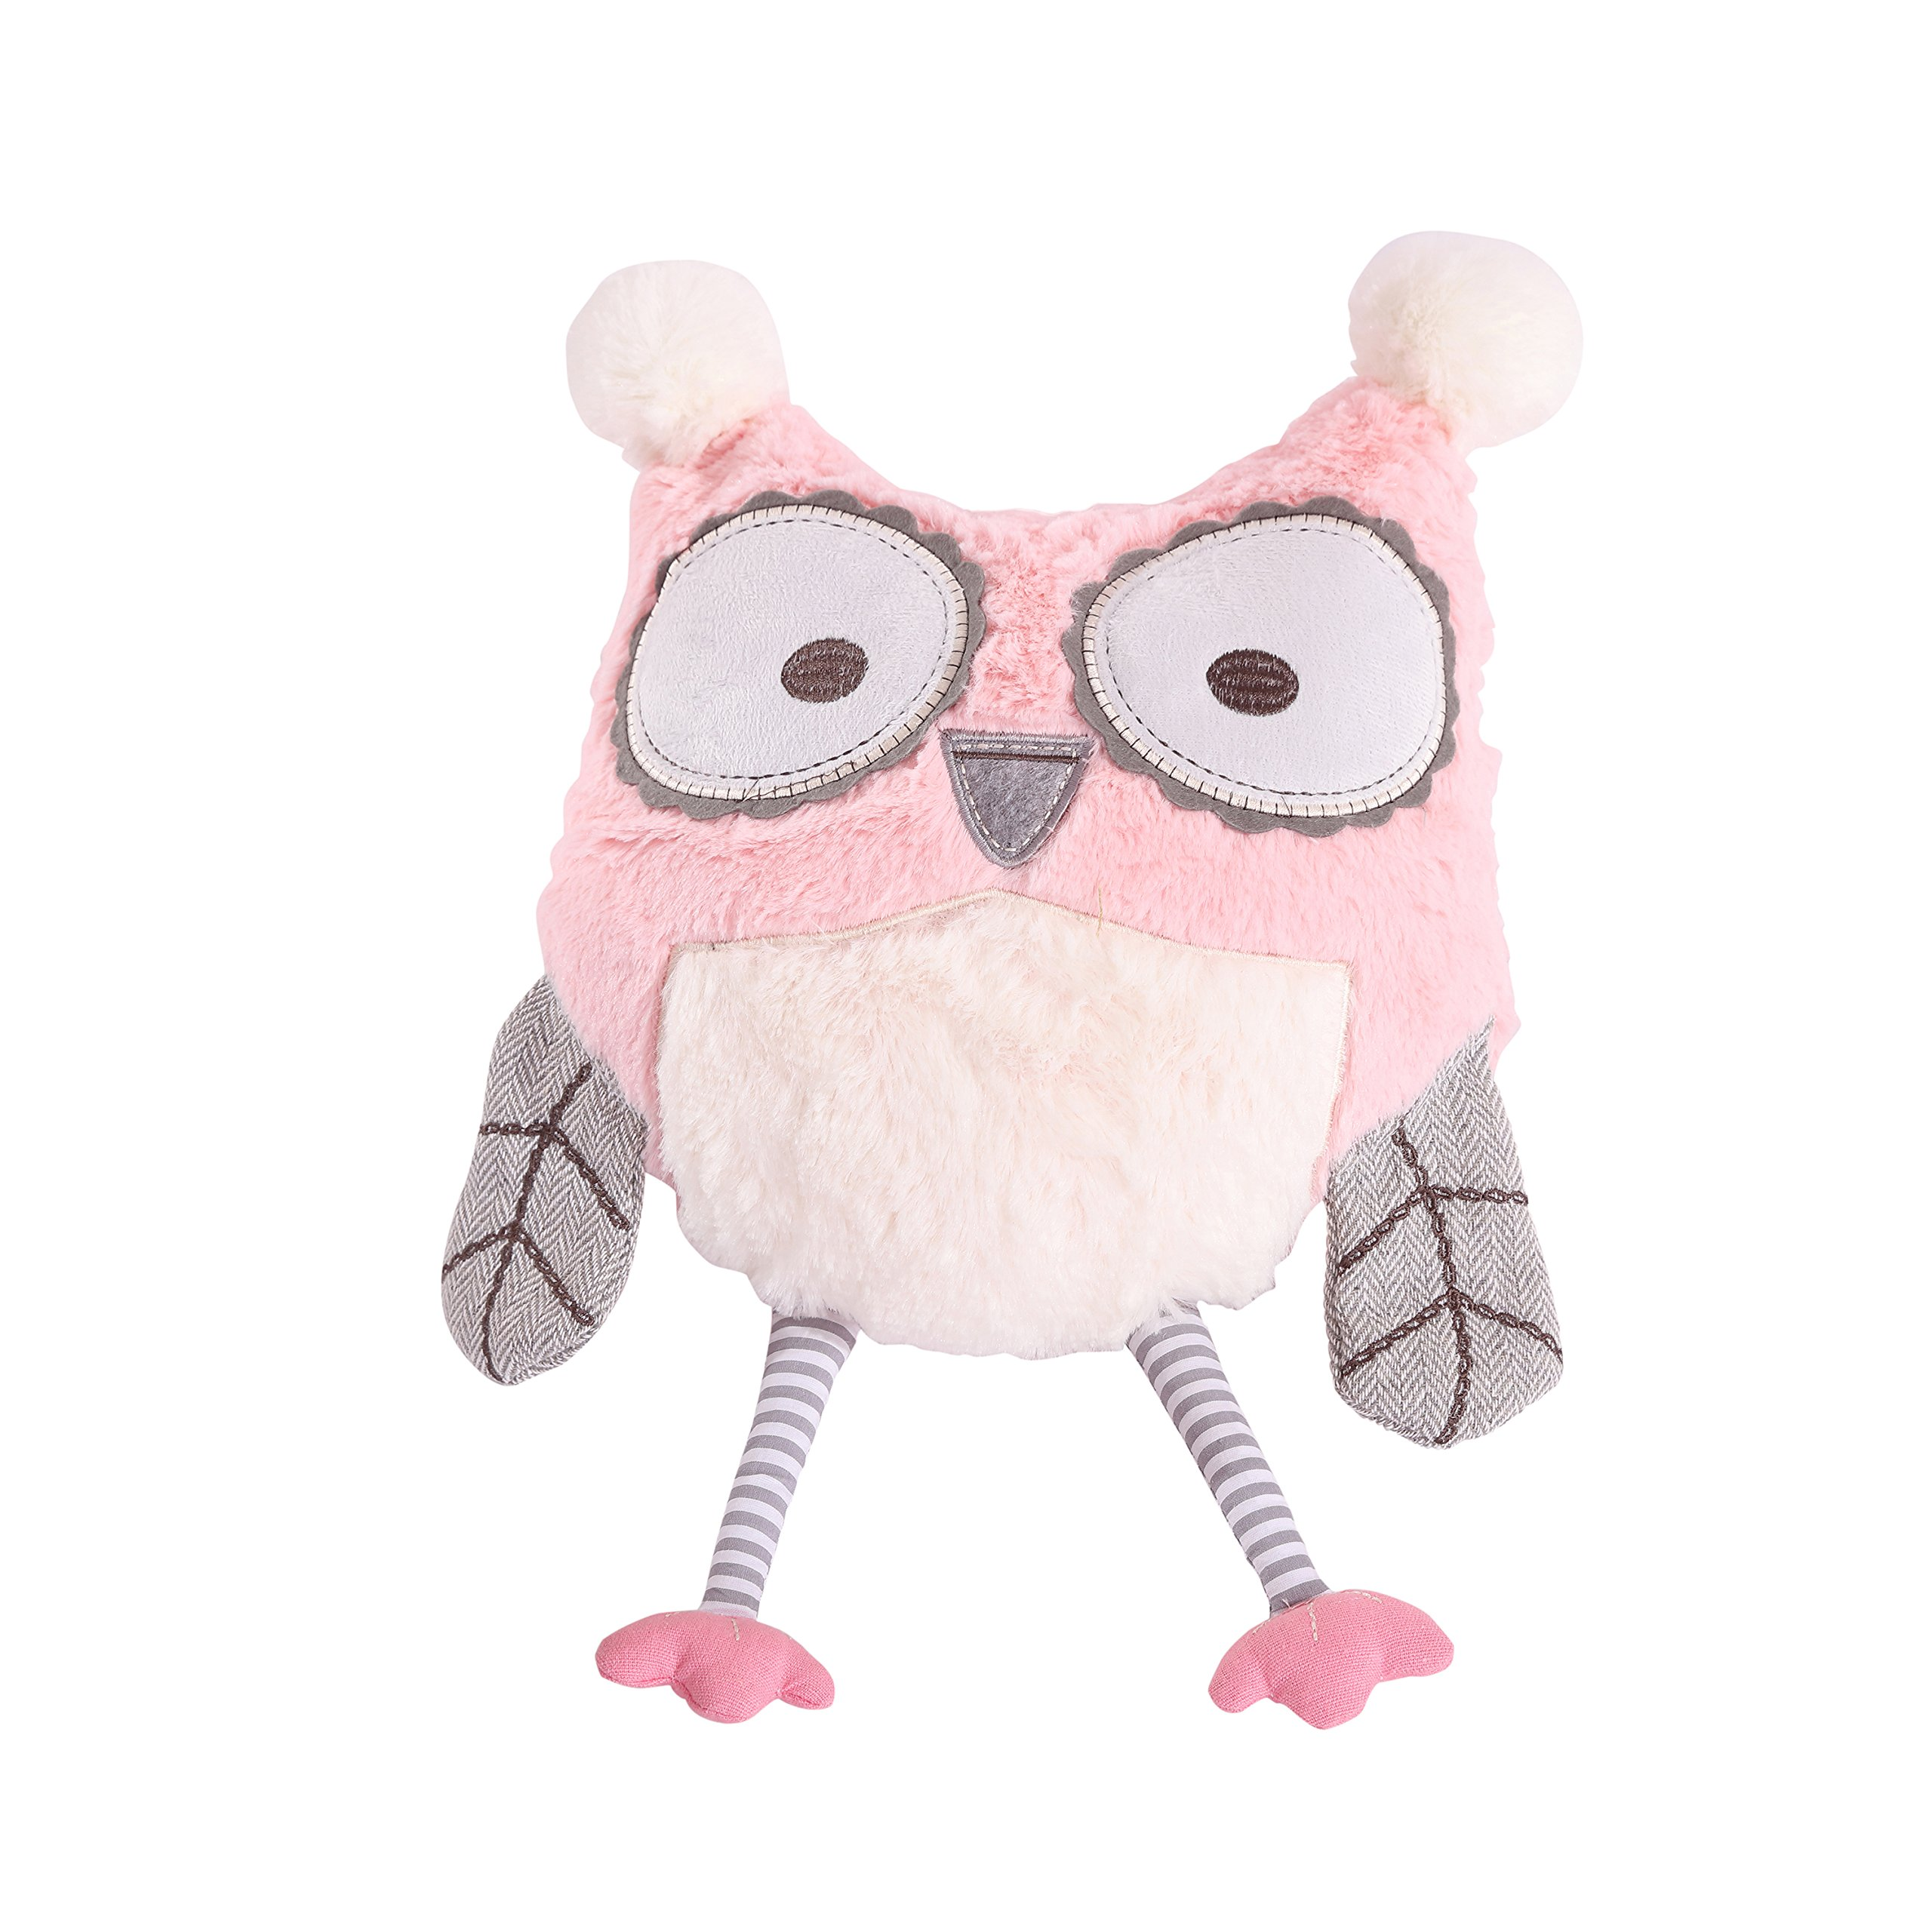 Levtex Home Baby Night Owl Pillow, Pink